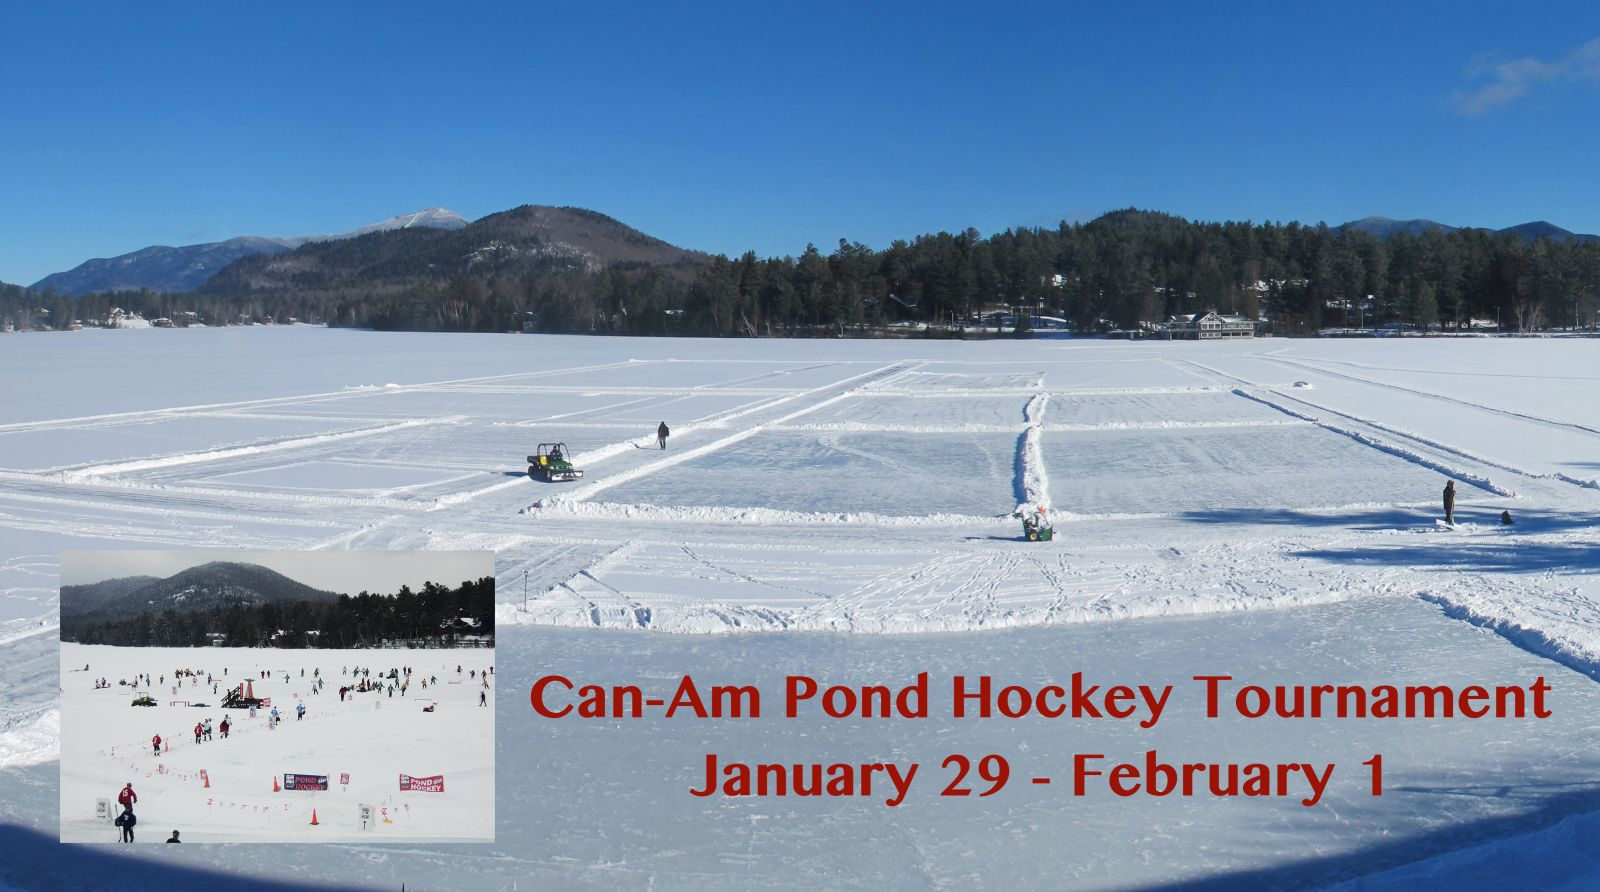 Banff Mt Film Fest Pond Hockey Mountainfest And More A Month Of